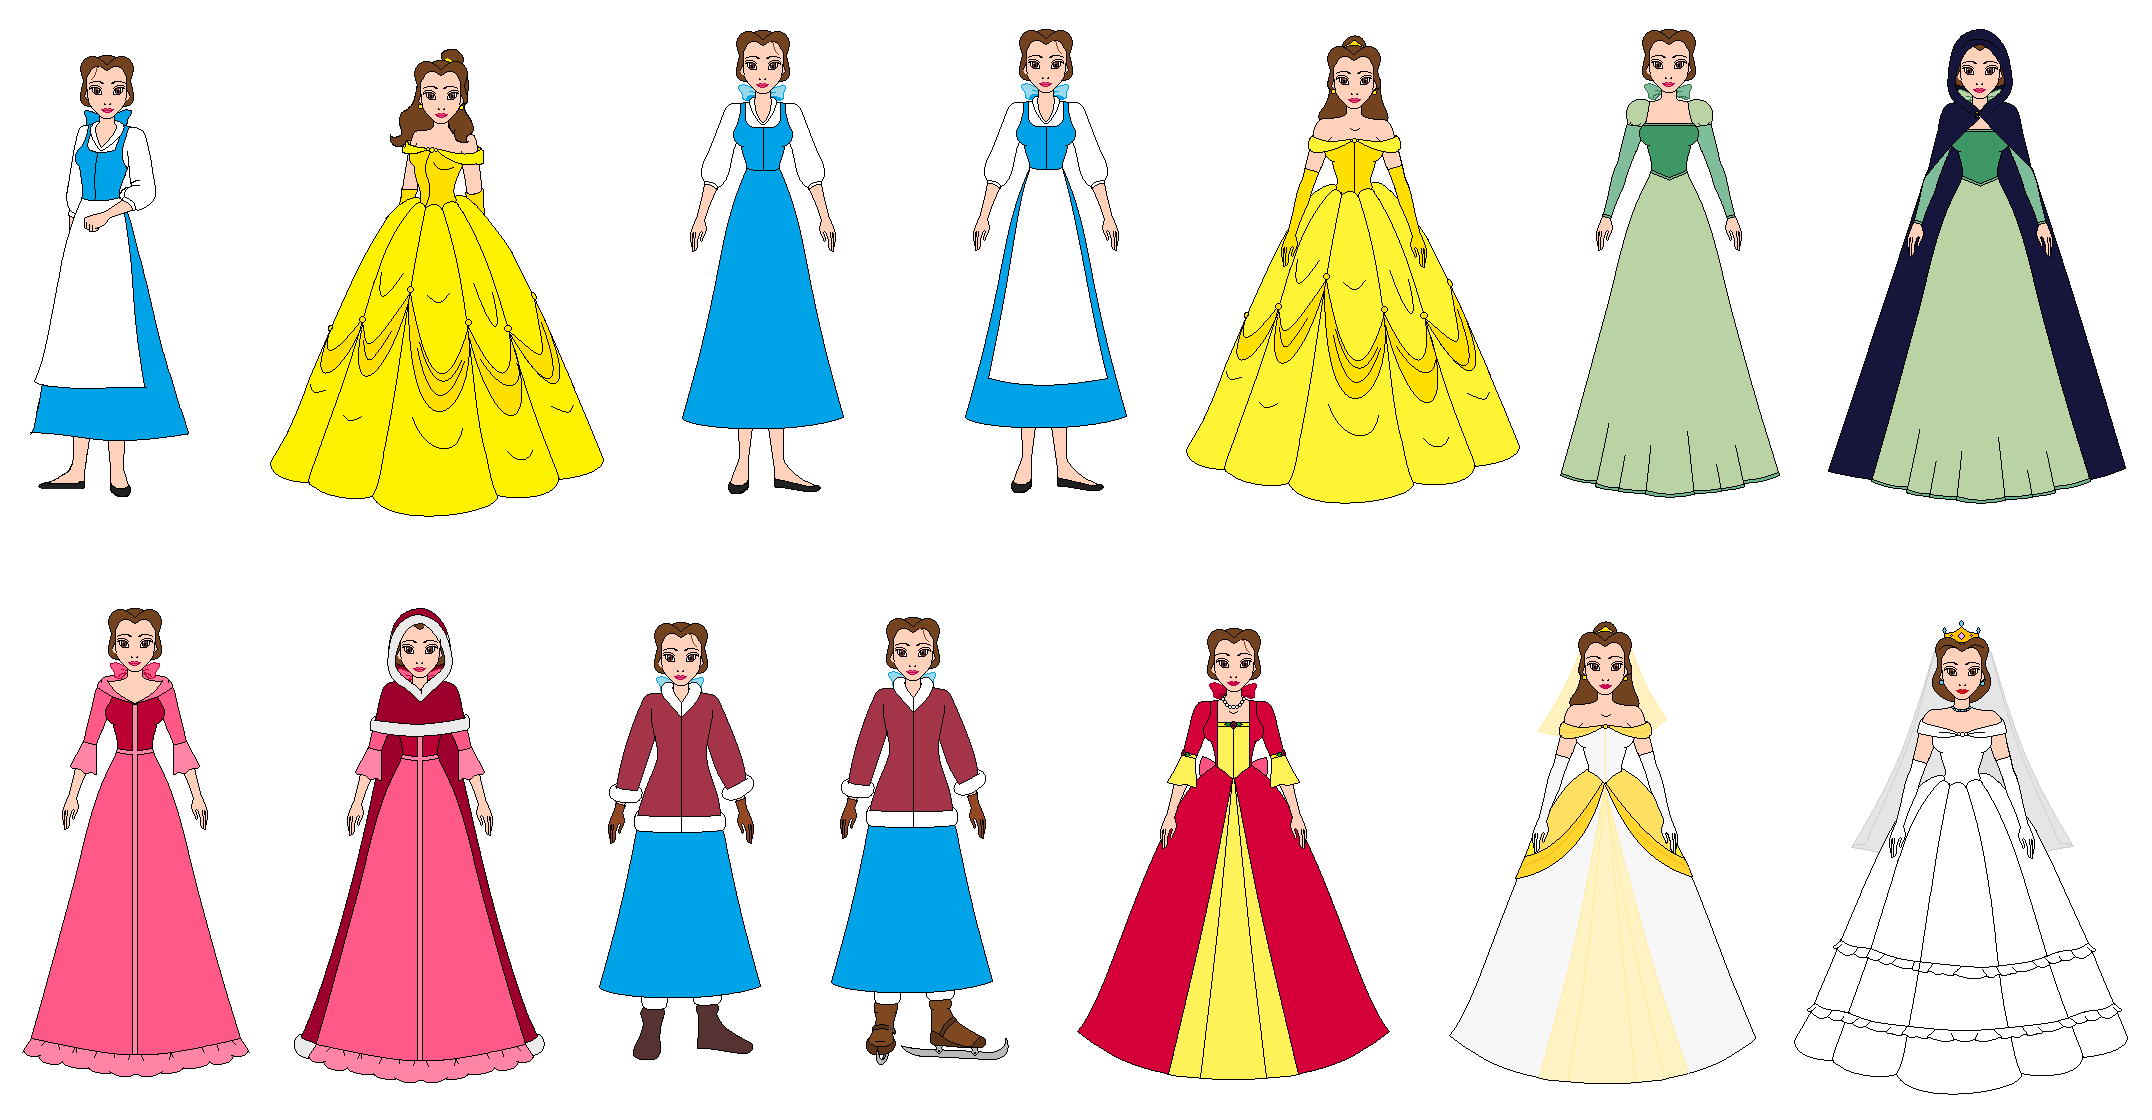 All by ppsantos on. Belle dress clipart